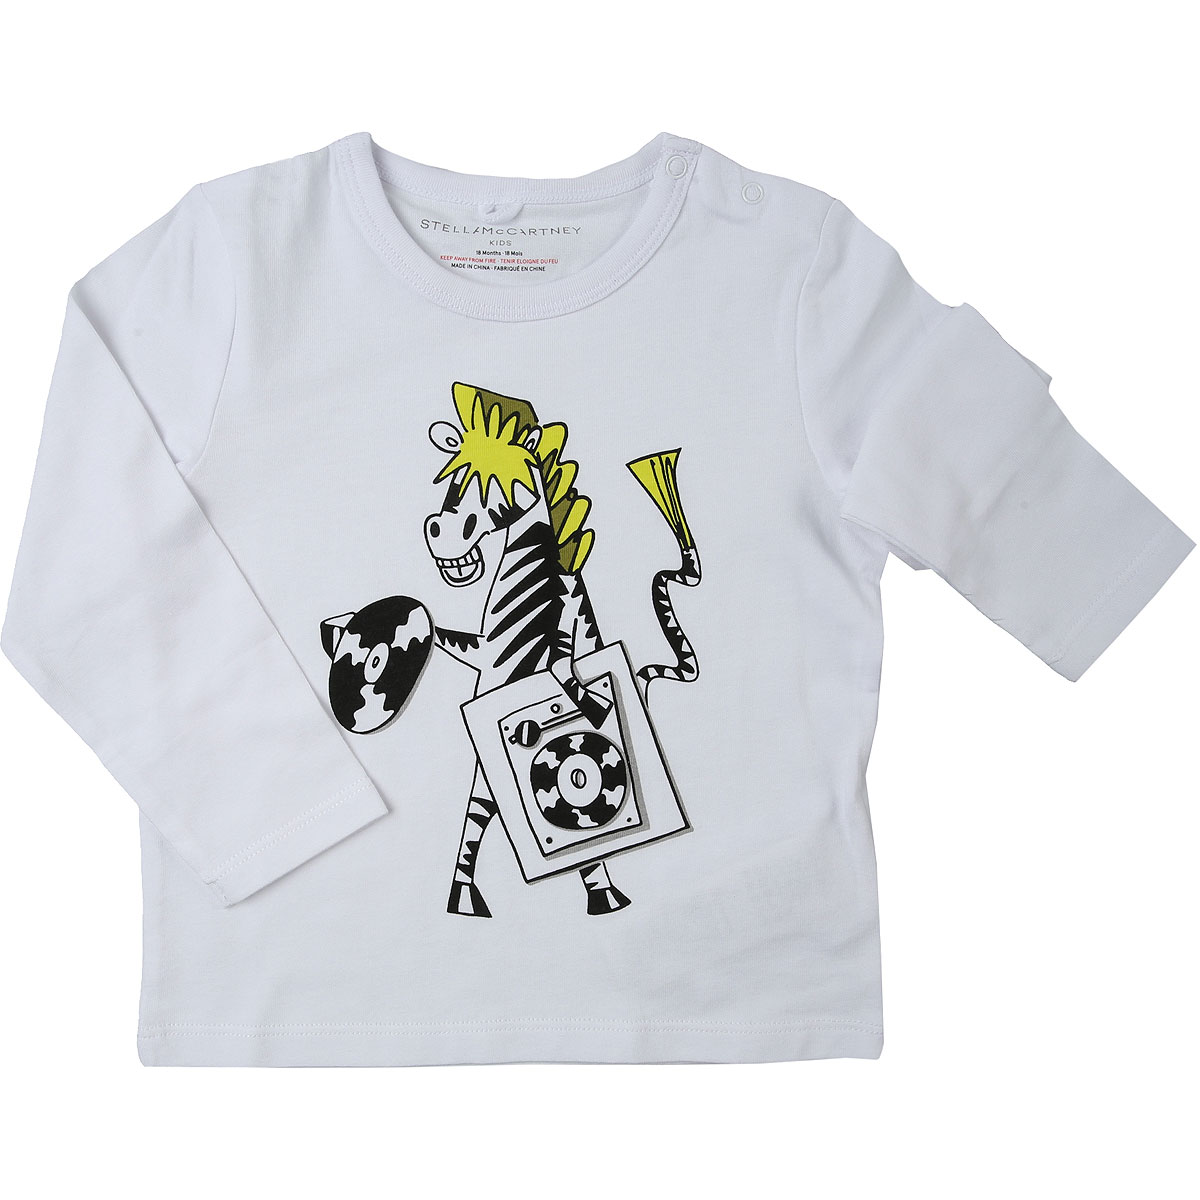 Kenzo Baby T-Shirt for Boys On Sale, White, Cotton, 2019, 6M 9M